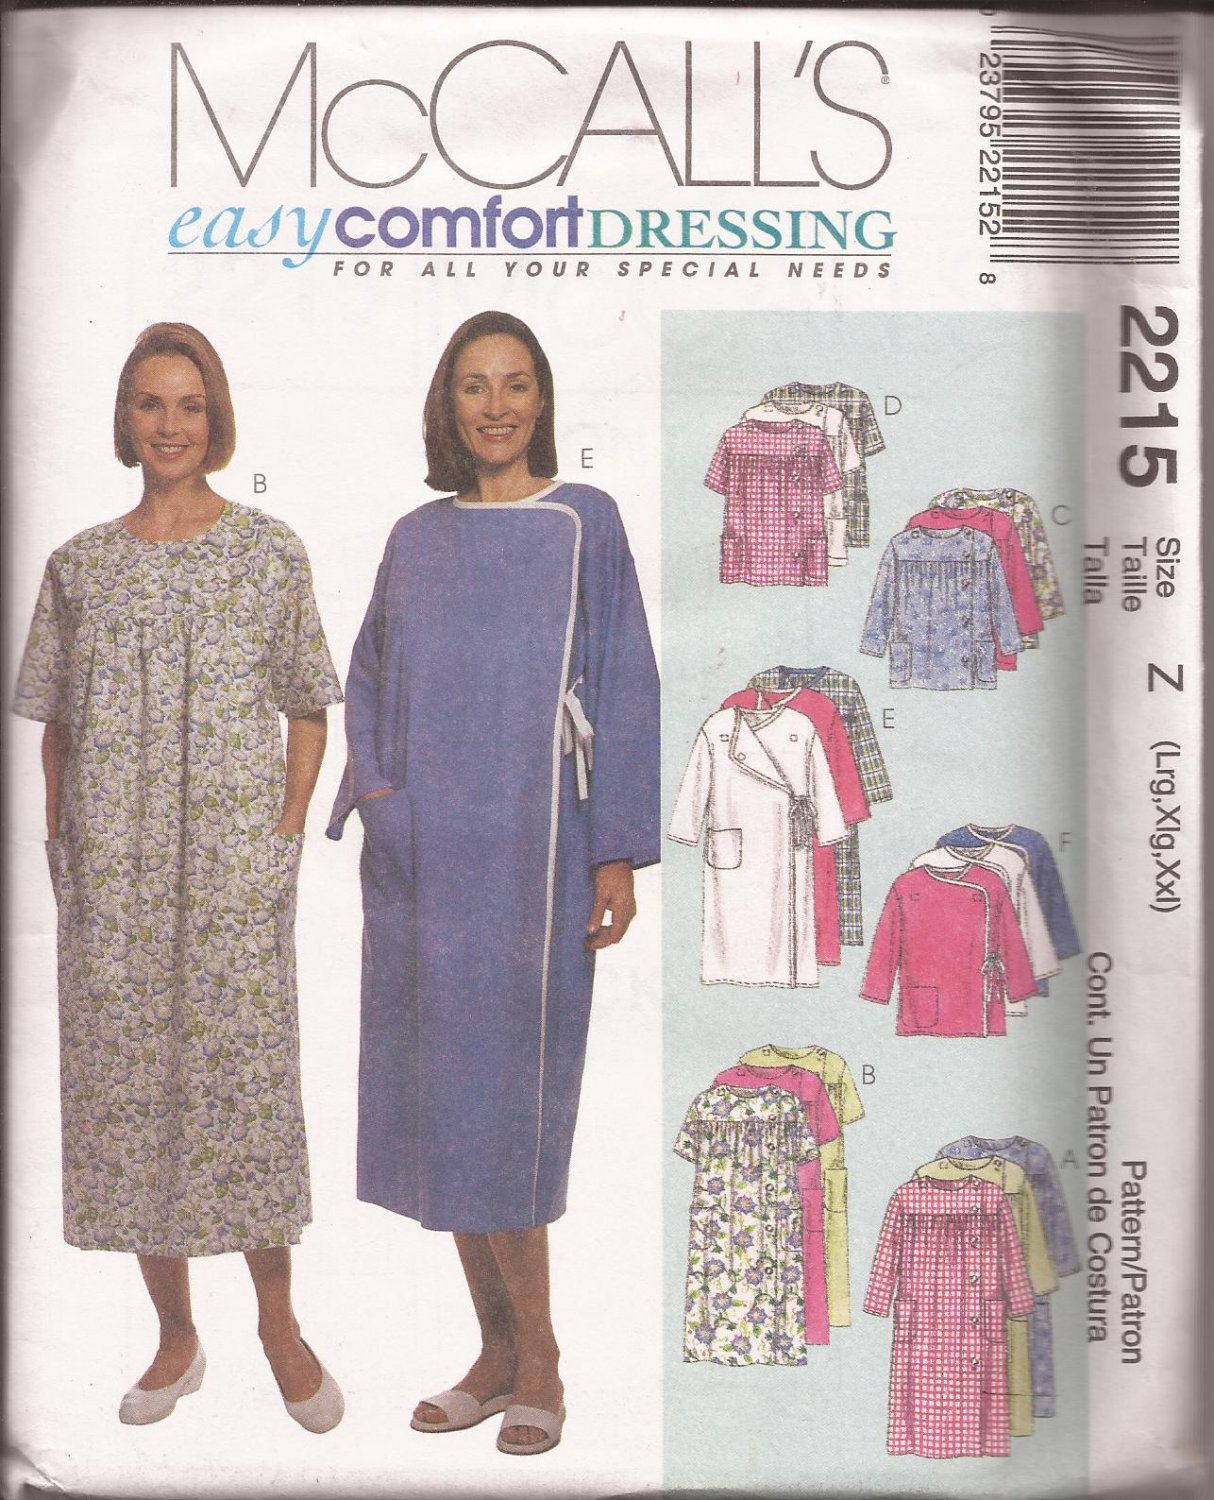 hospital gown pattern mccalls | Fashion Gallery